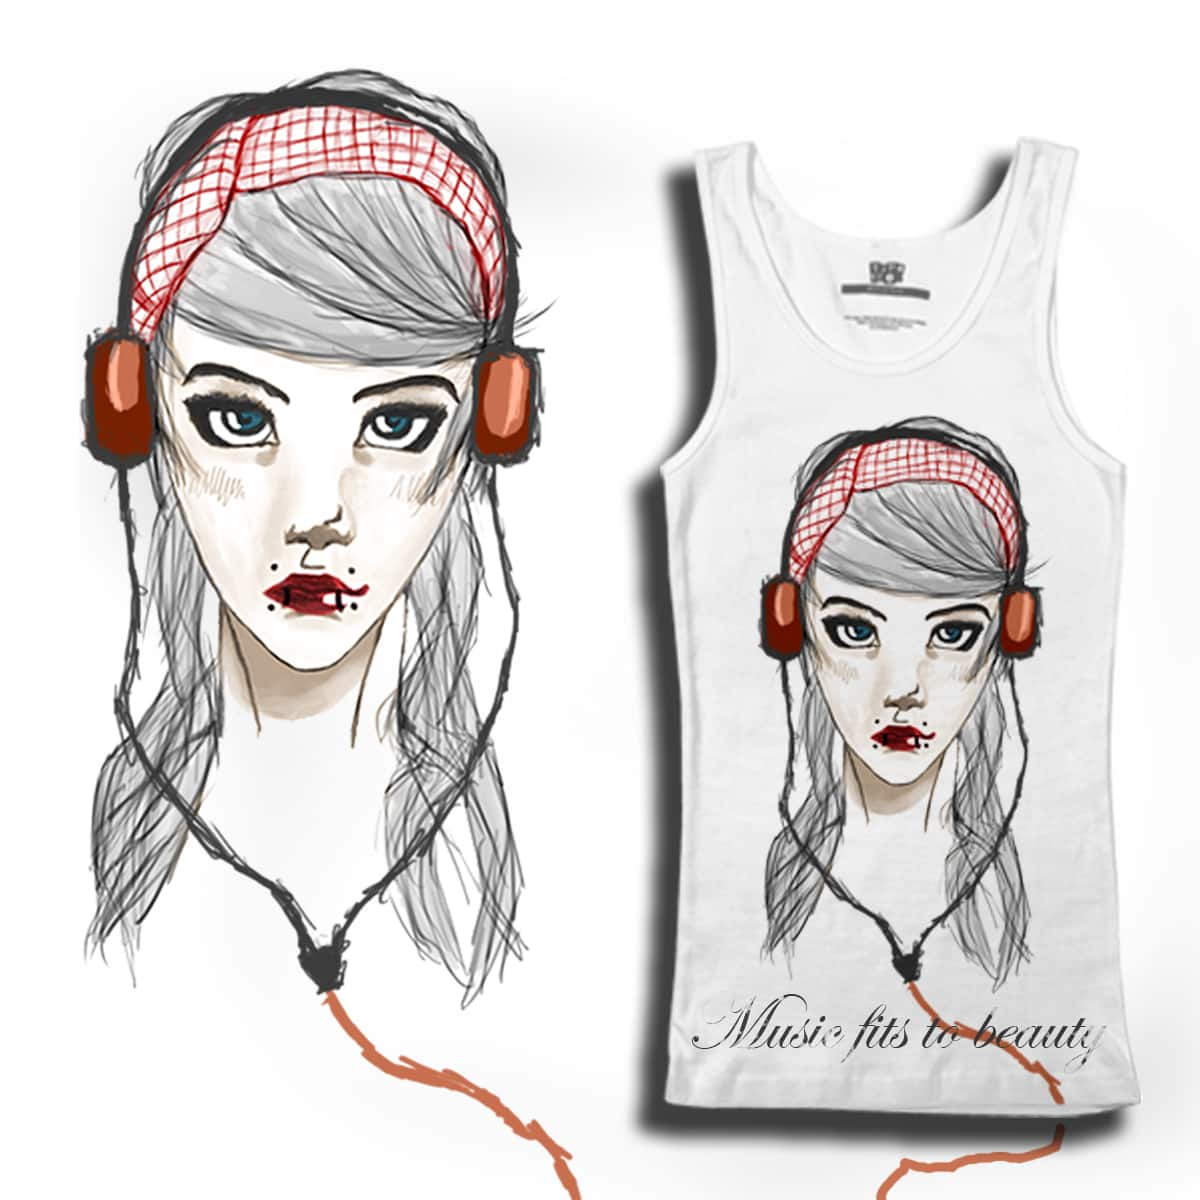 Music fits to beauty by Dudelix on Threadless